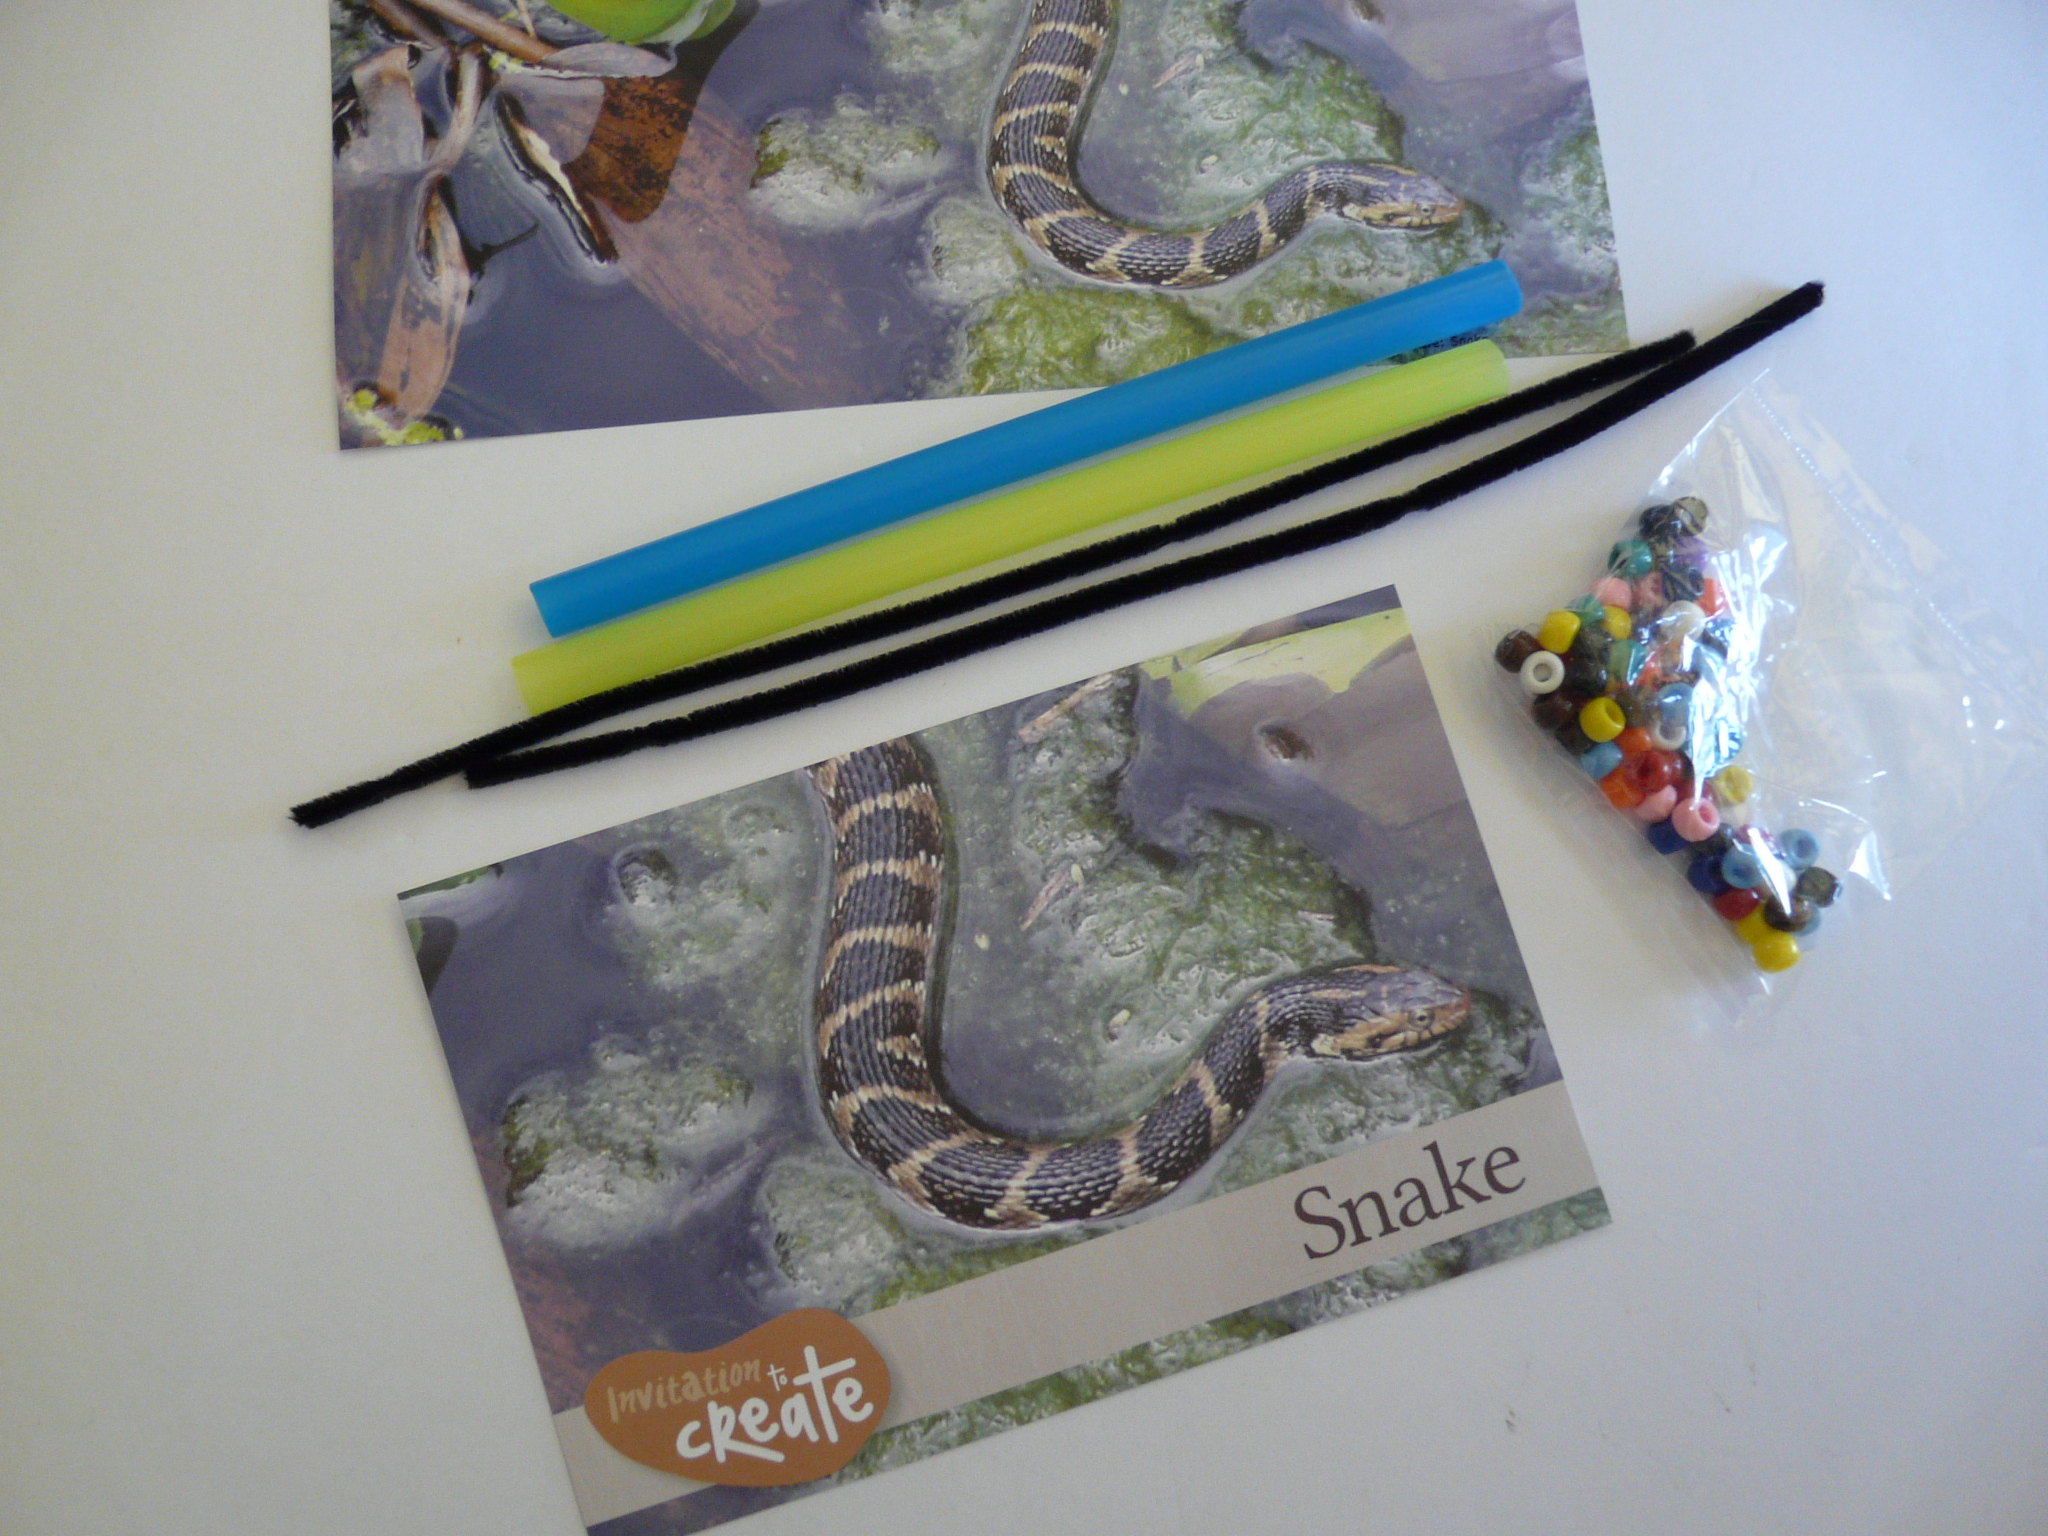 Snake Inspiration Photo, Pipecleaners, Straws and Beads by Haydee Montemayor from Love and Treasure Blog that you can find at www.loveandtreasure.com P1210020